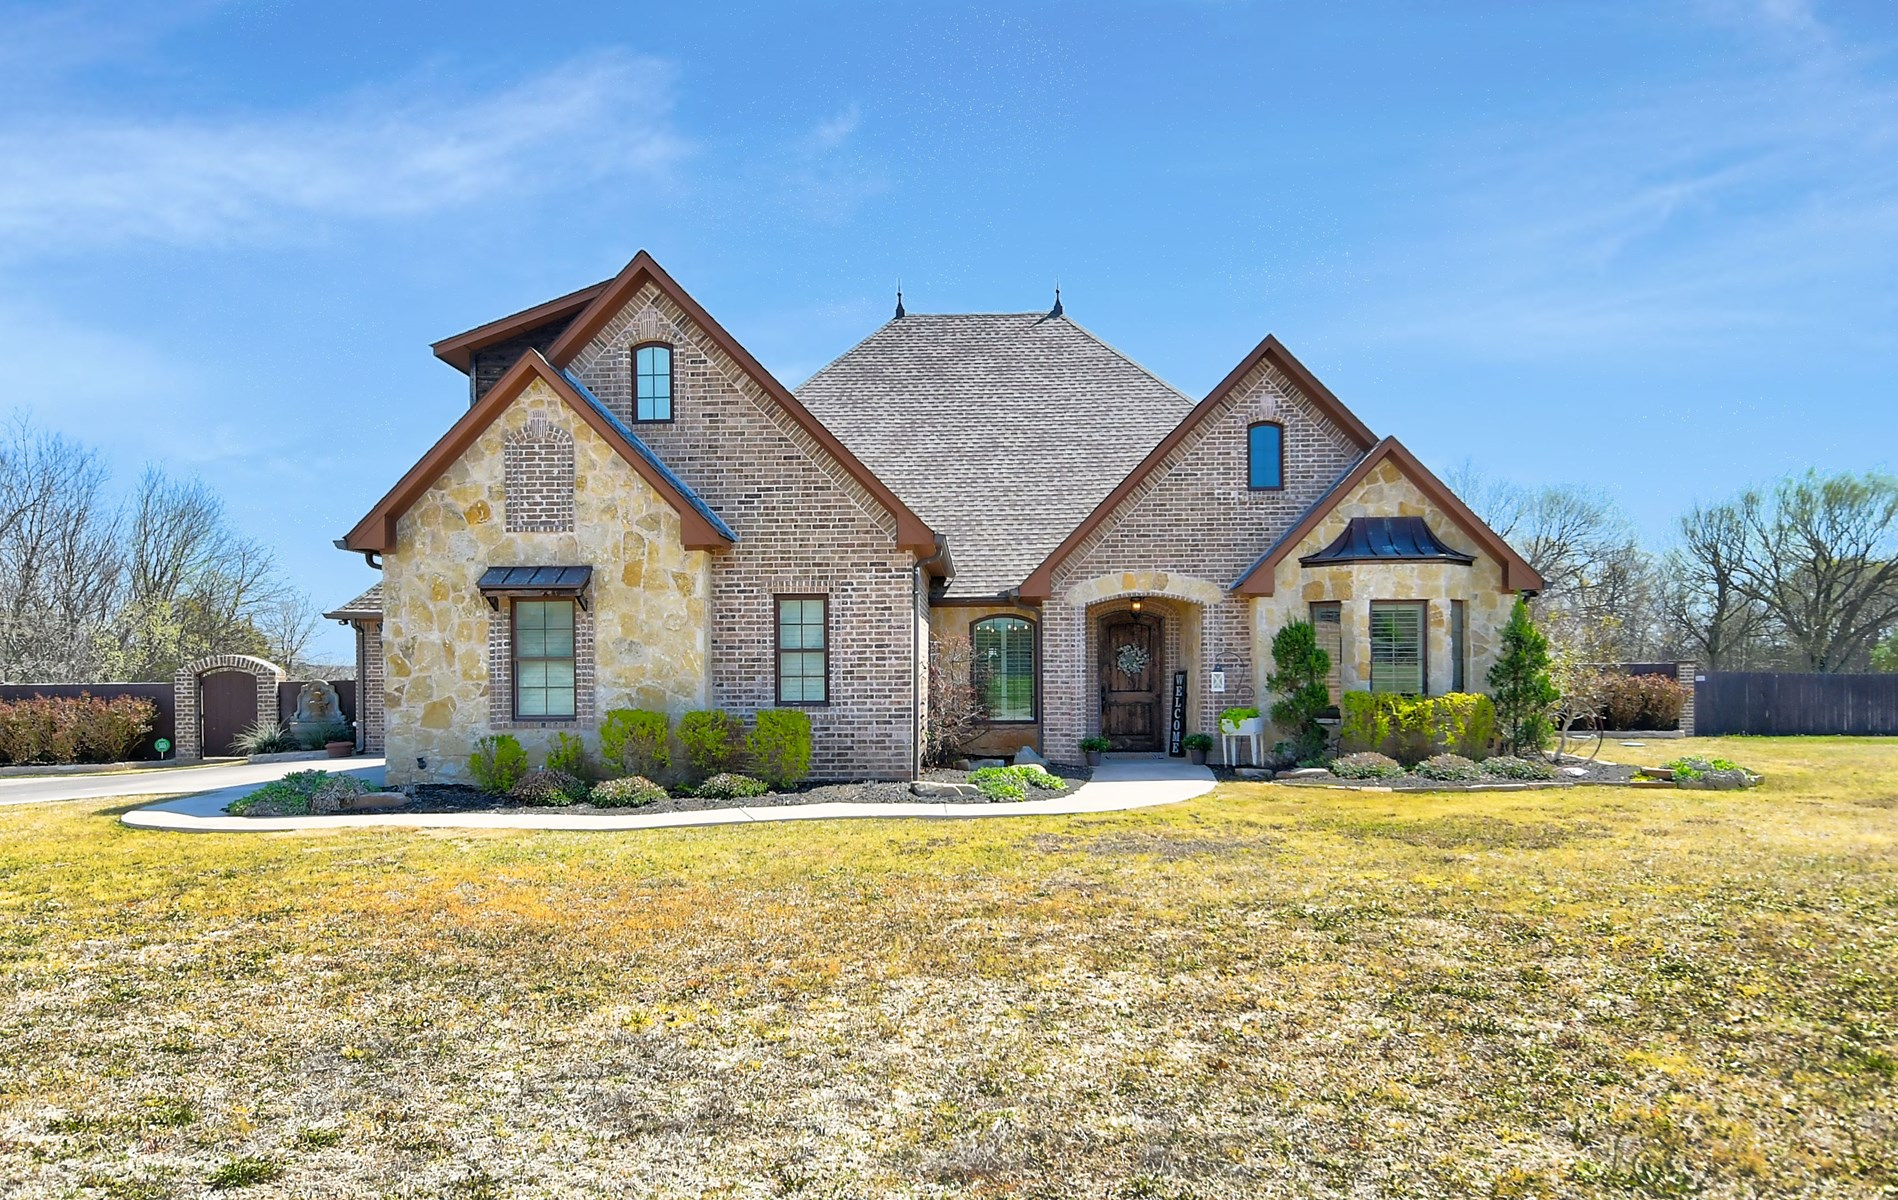 SOUTHERN OKLAHOMA CUSTOM BUILT HOME IN GATED COMMUNITY